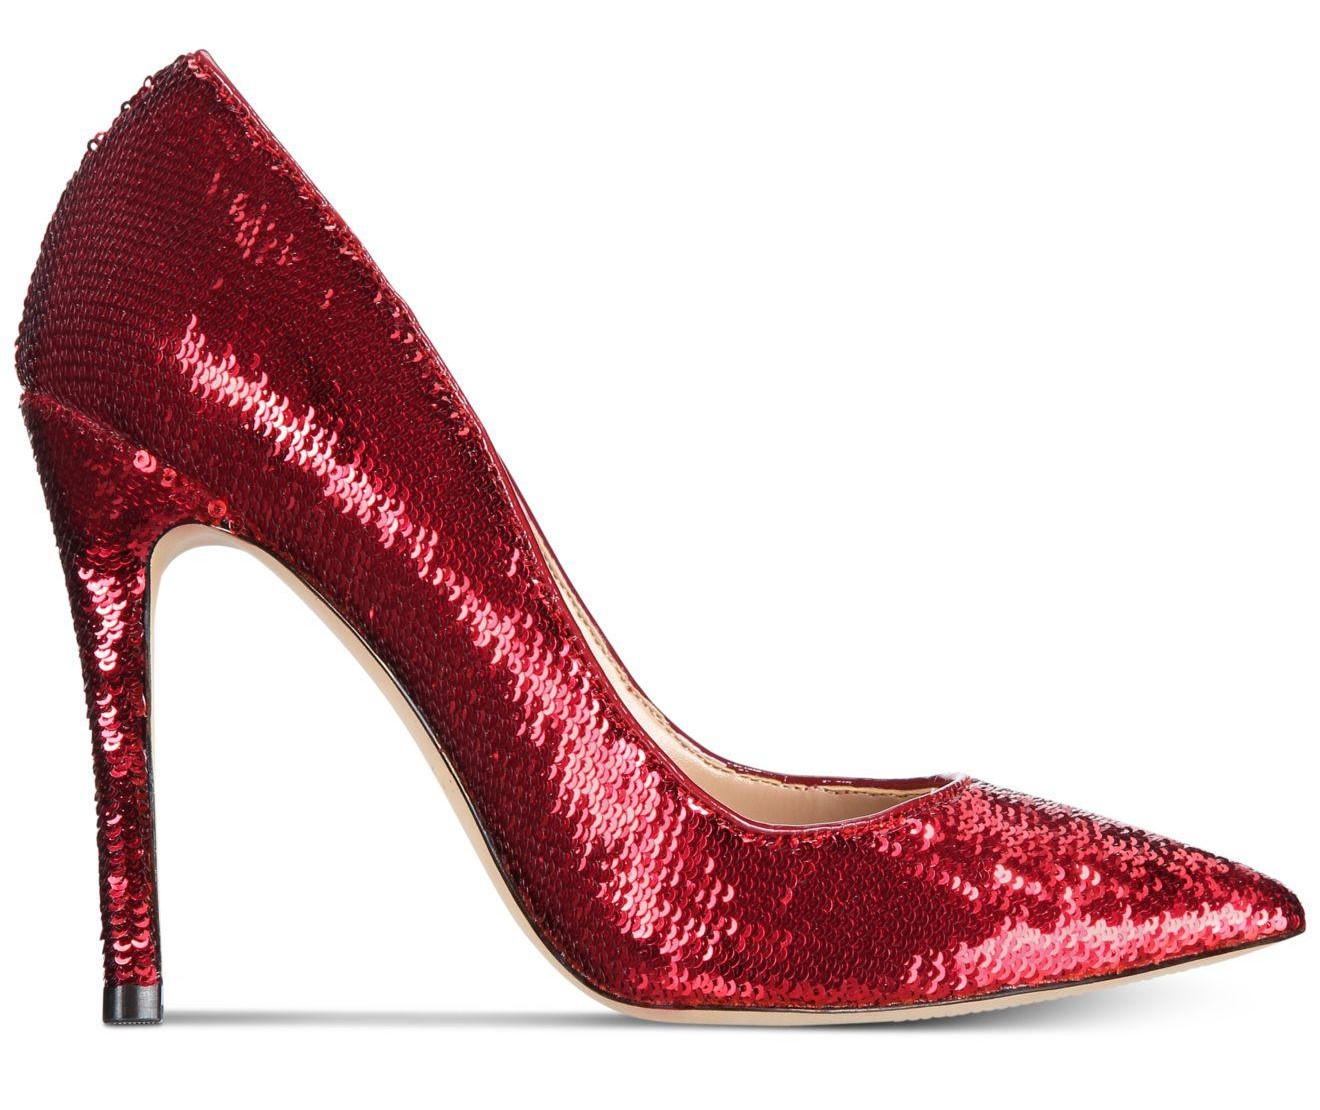 aldo red shoes Stessy Sequin Pumps